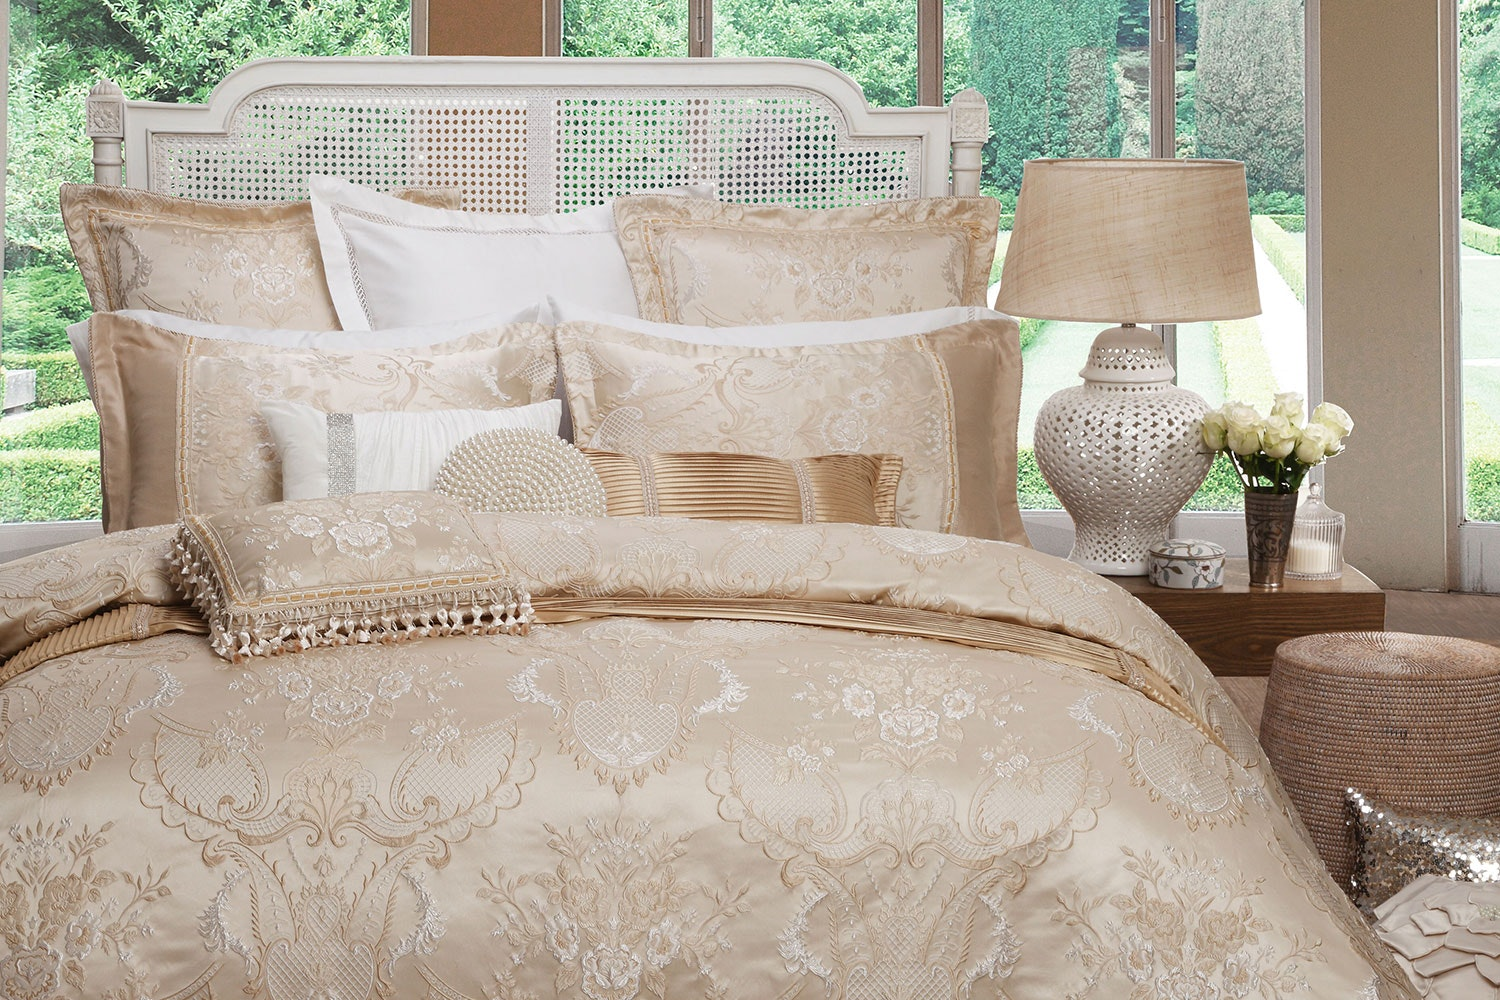 Antoinette Gold Bed Linen by Da Vinci